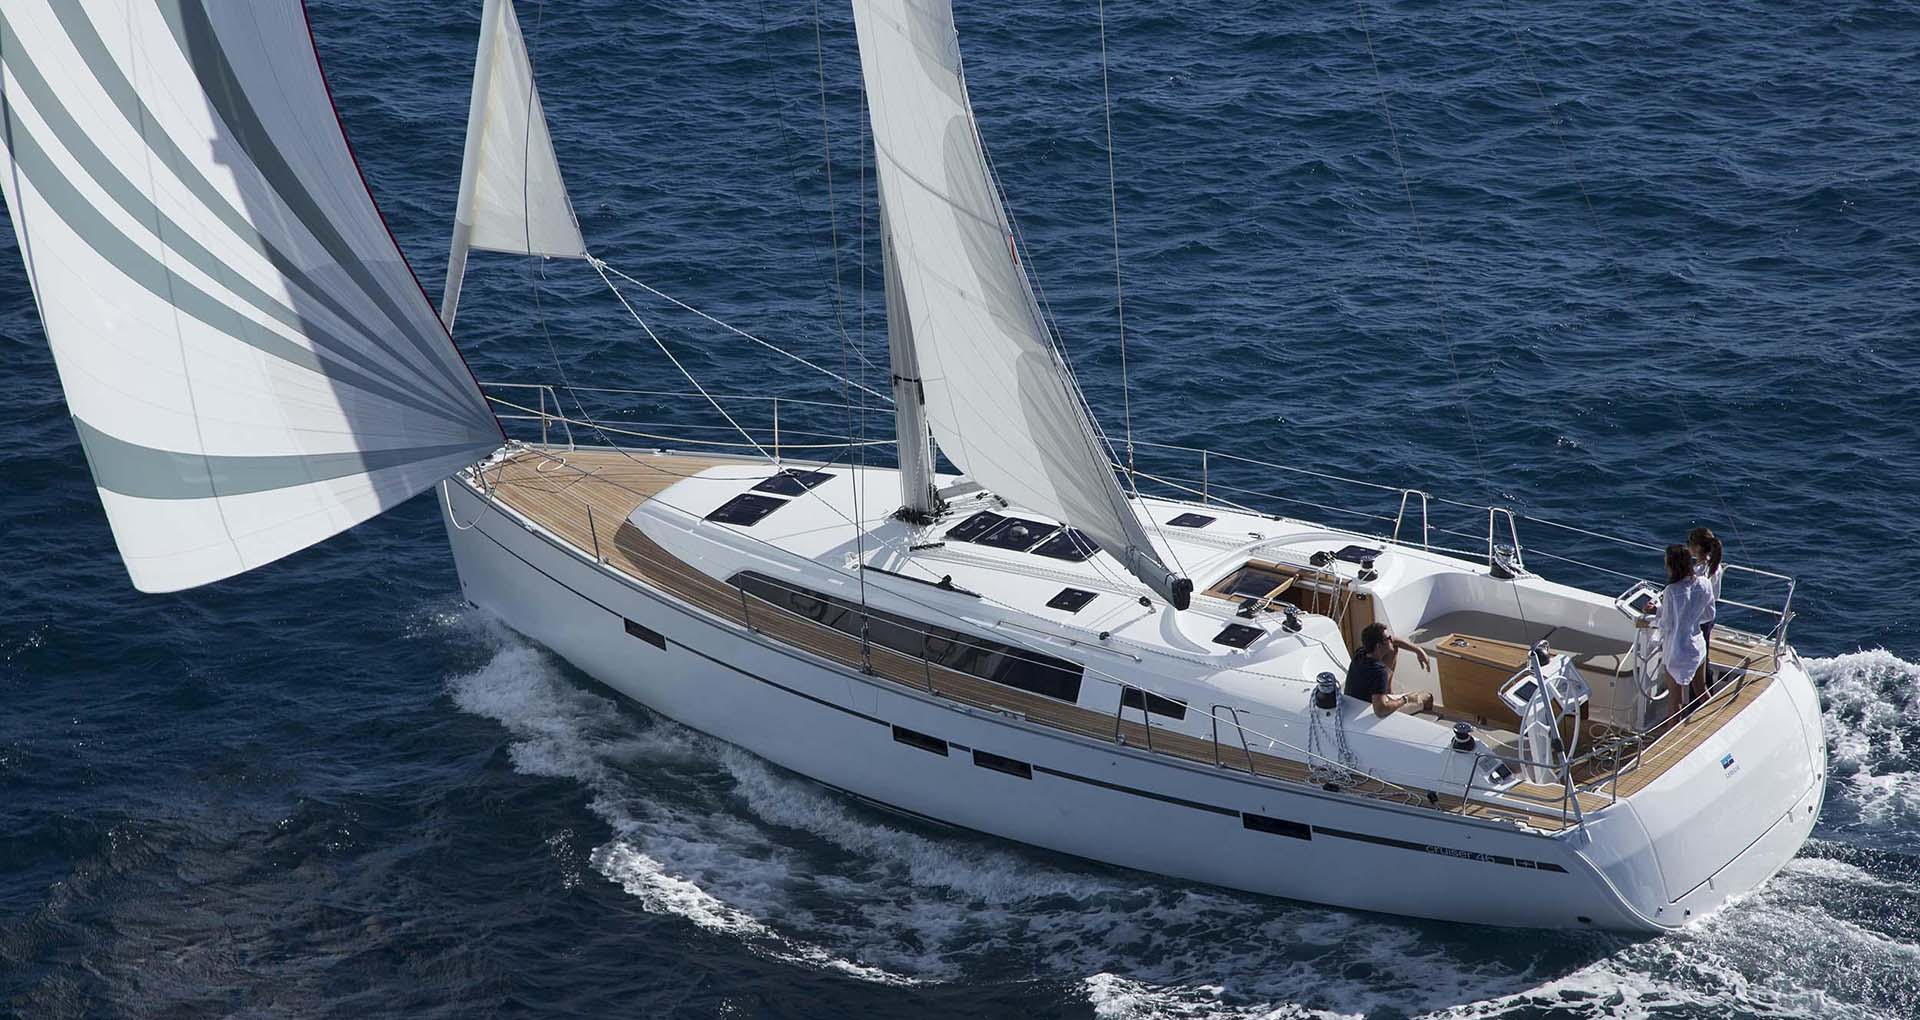 SW7 - Sailing Yacht for Charter in Greece